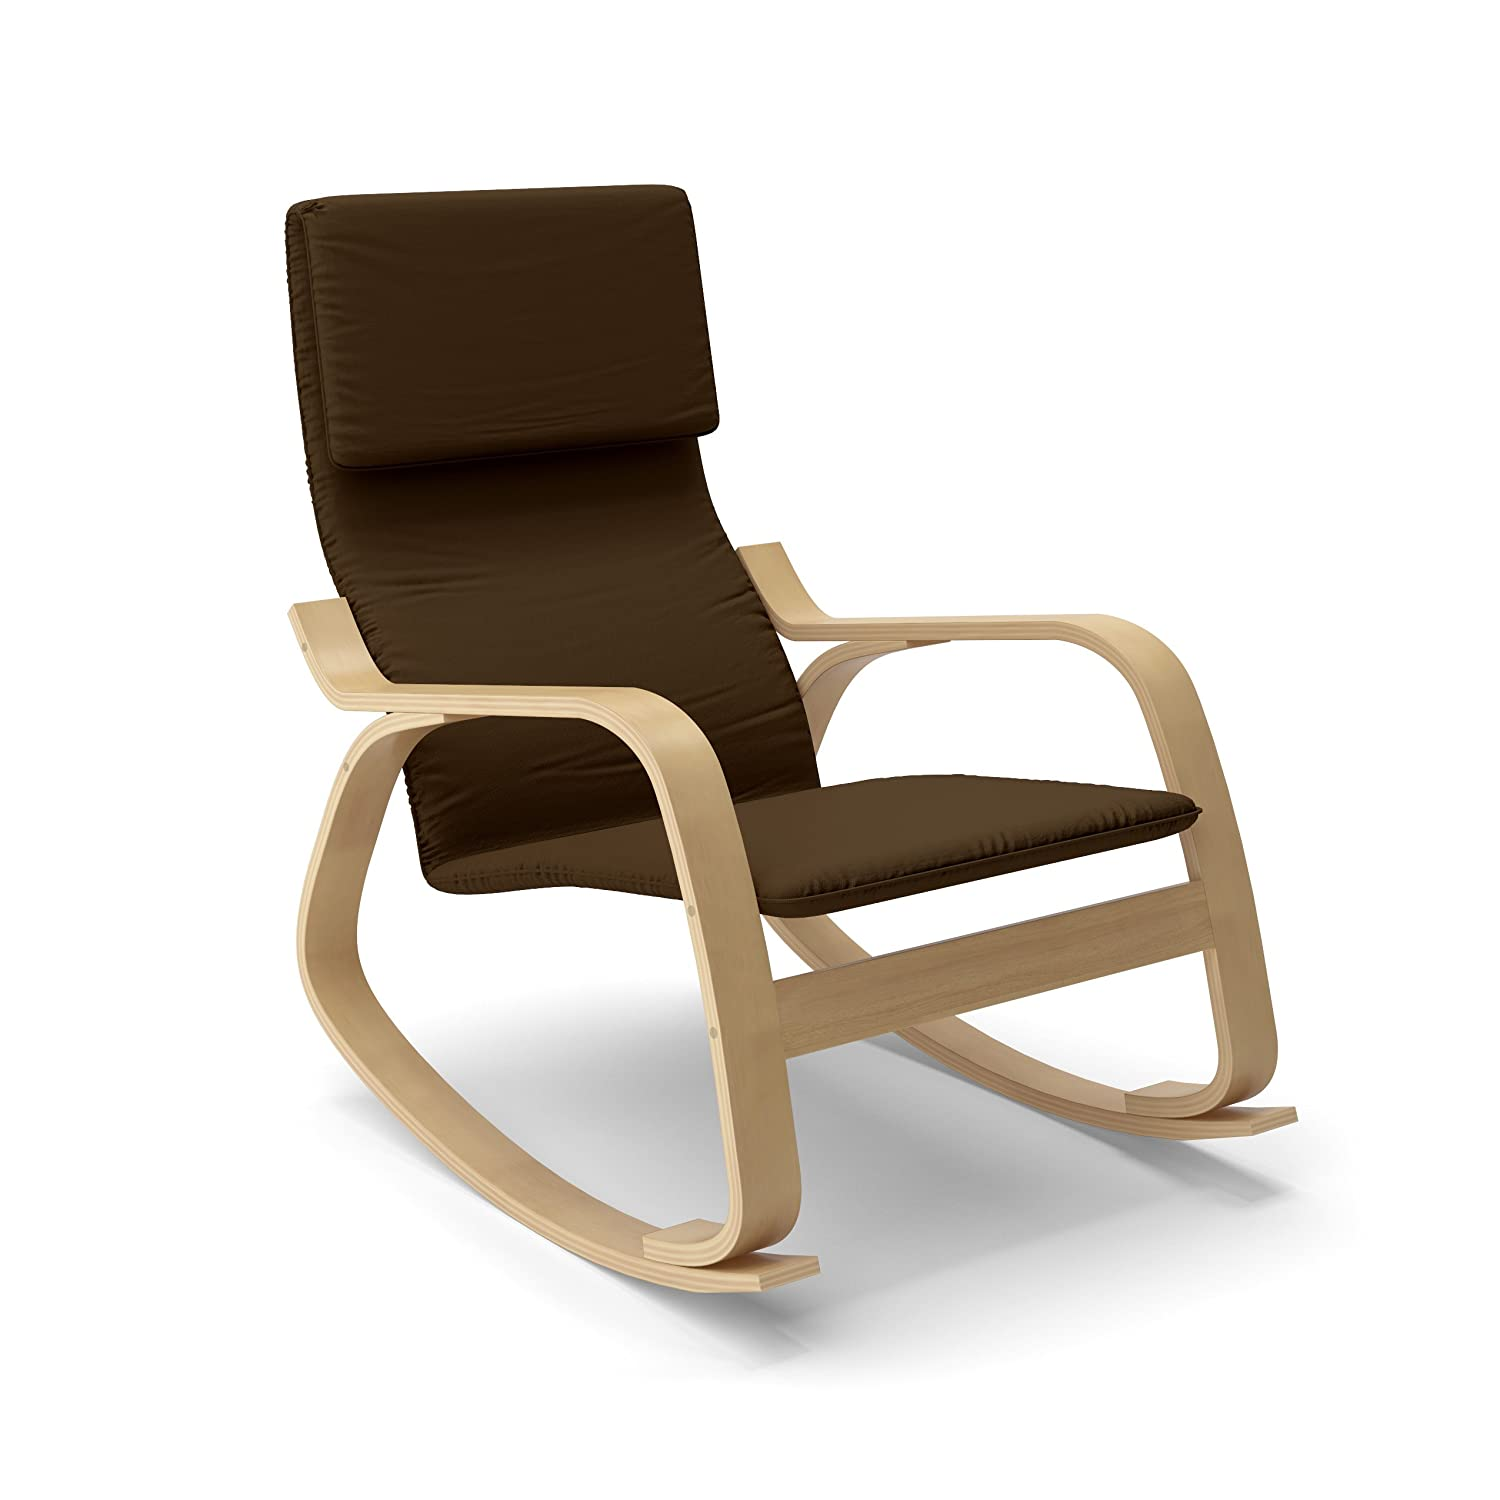 CorLiving LAQ 635 C Aquios Bentwood Contemporary Rocking Chair in